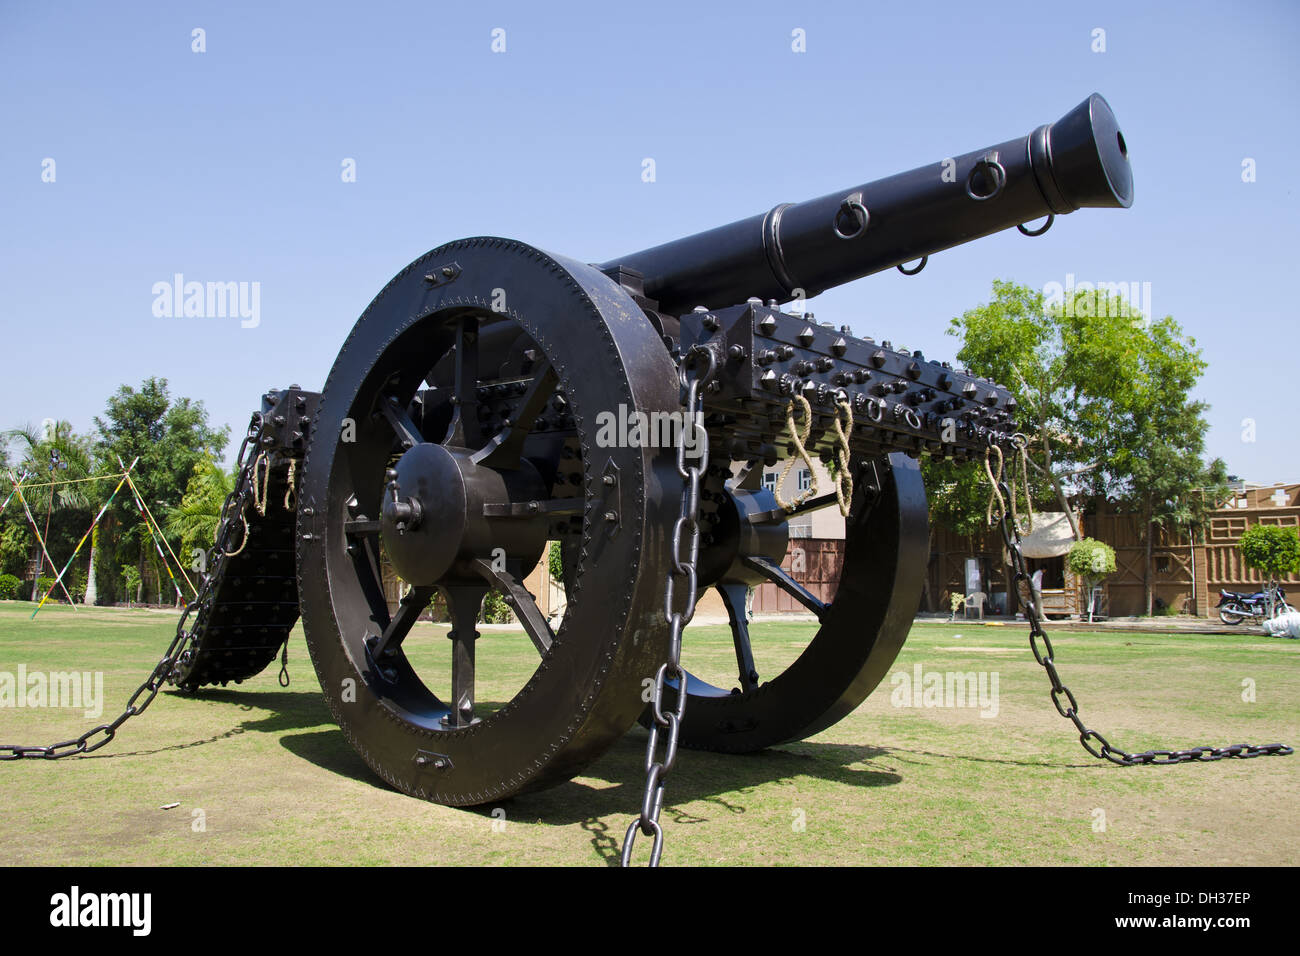 old antique cannon at Jodhpur Rajasthan India - Stock Image